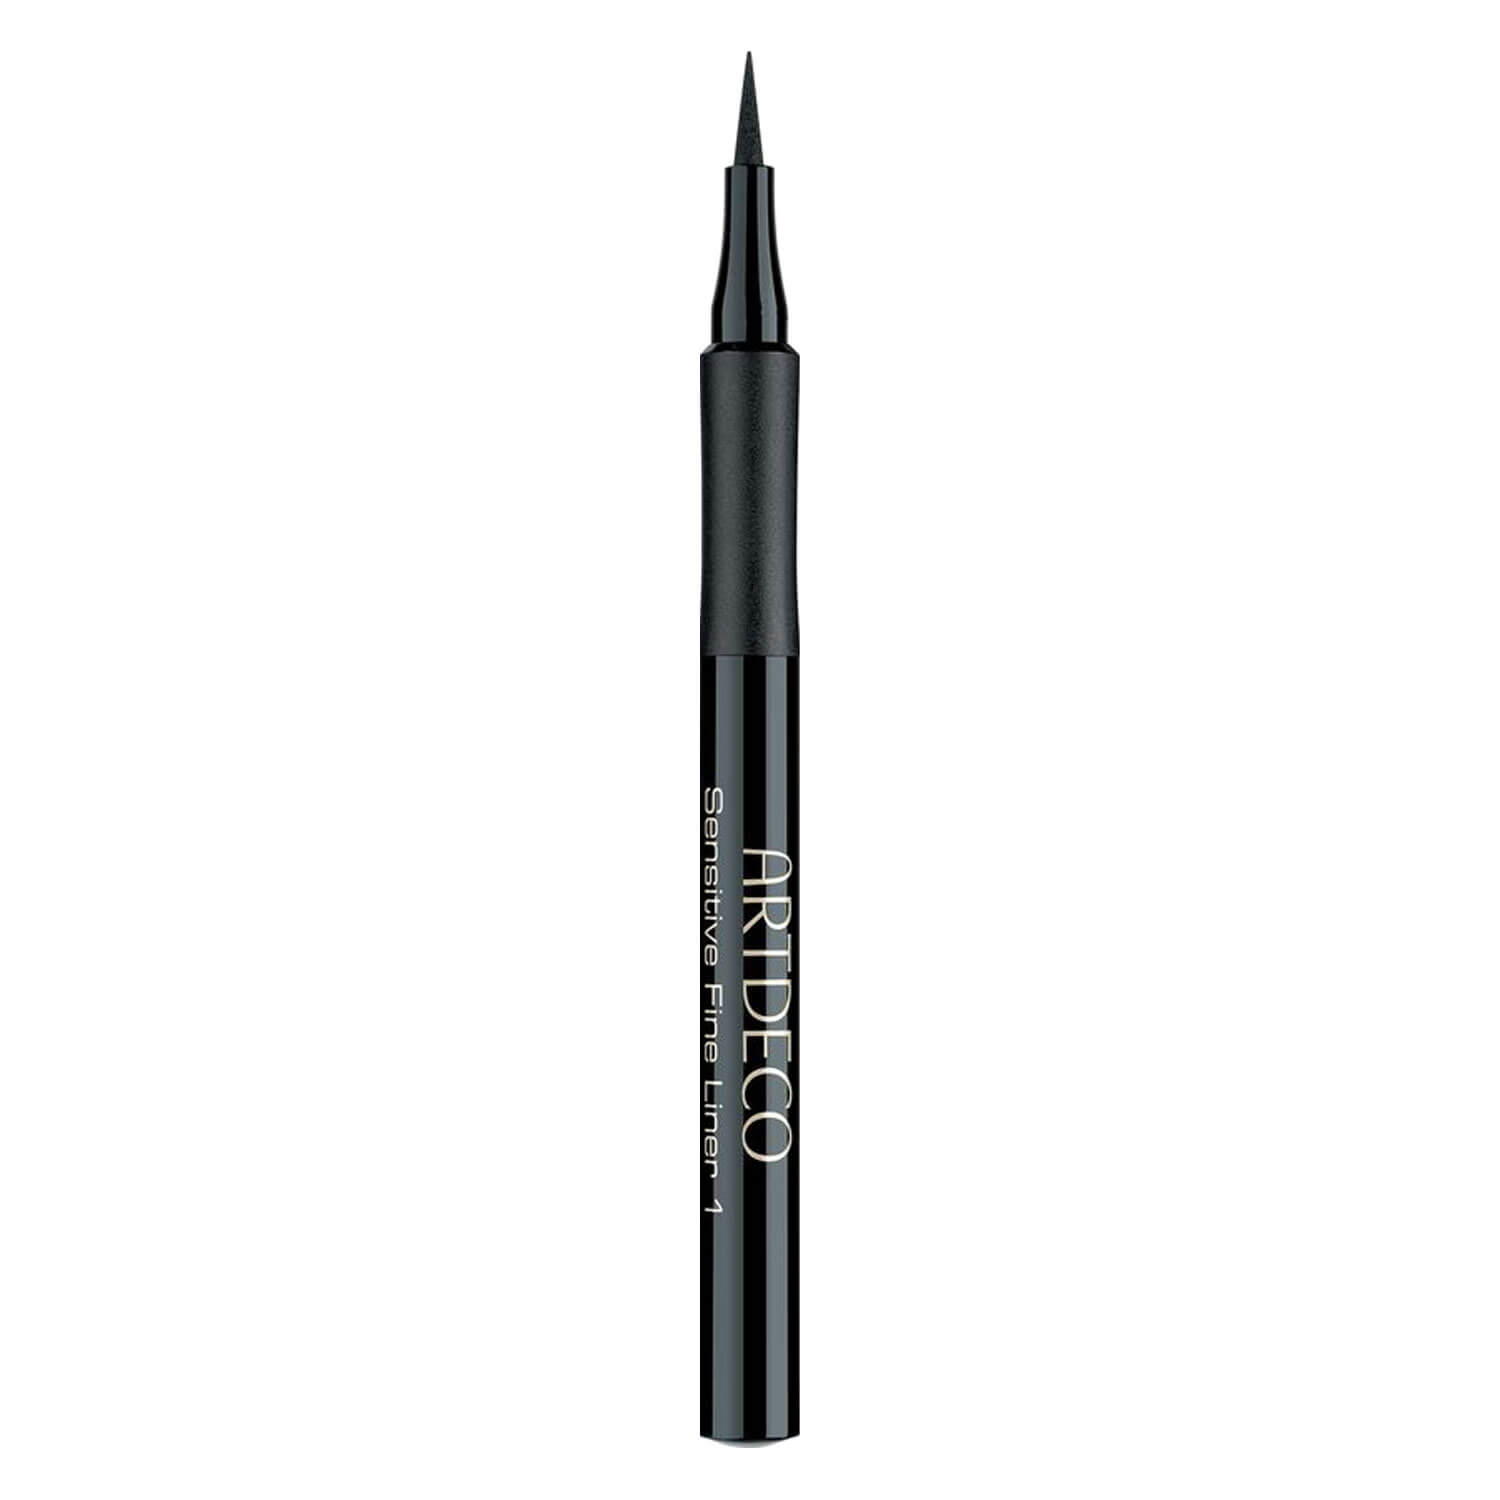 Artdeco Eyeliner - Sensitive Fine Liner Black